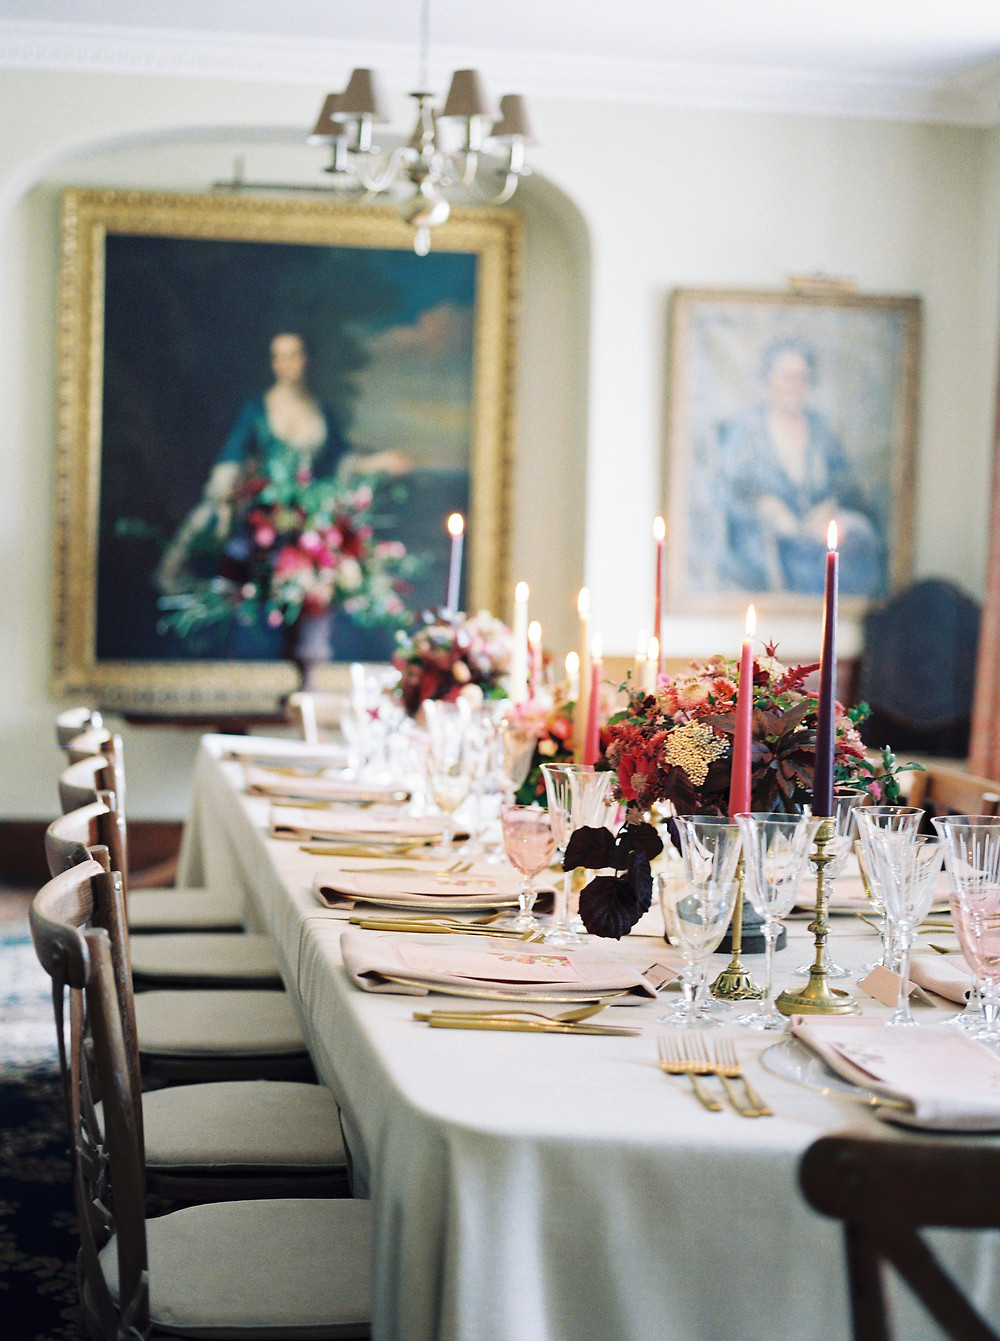 Warmwell Dining Room